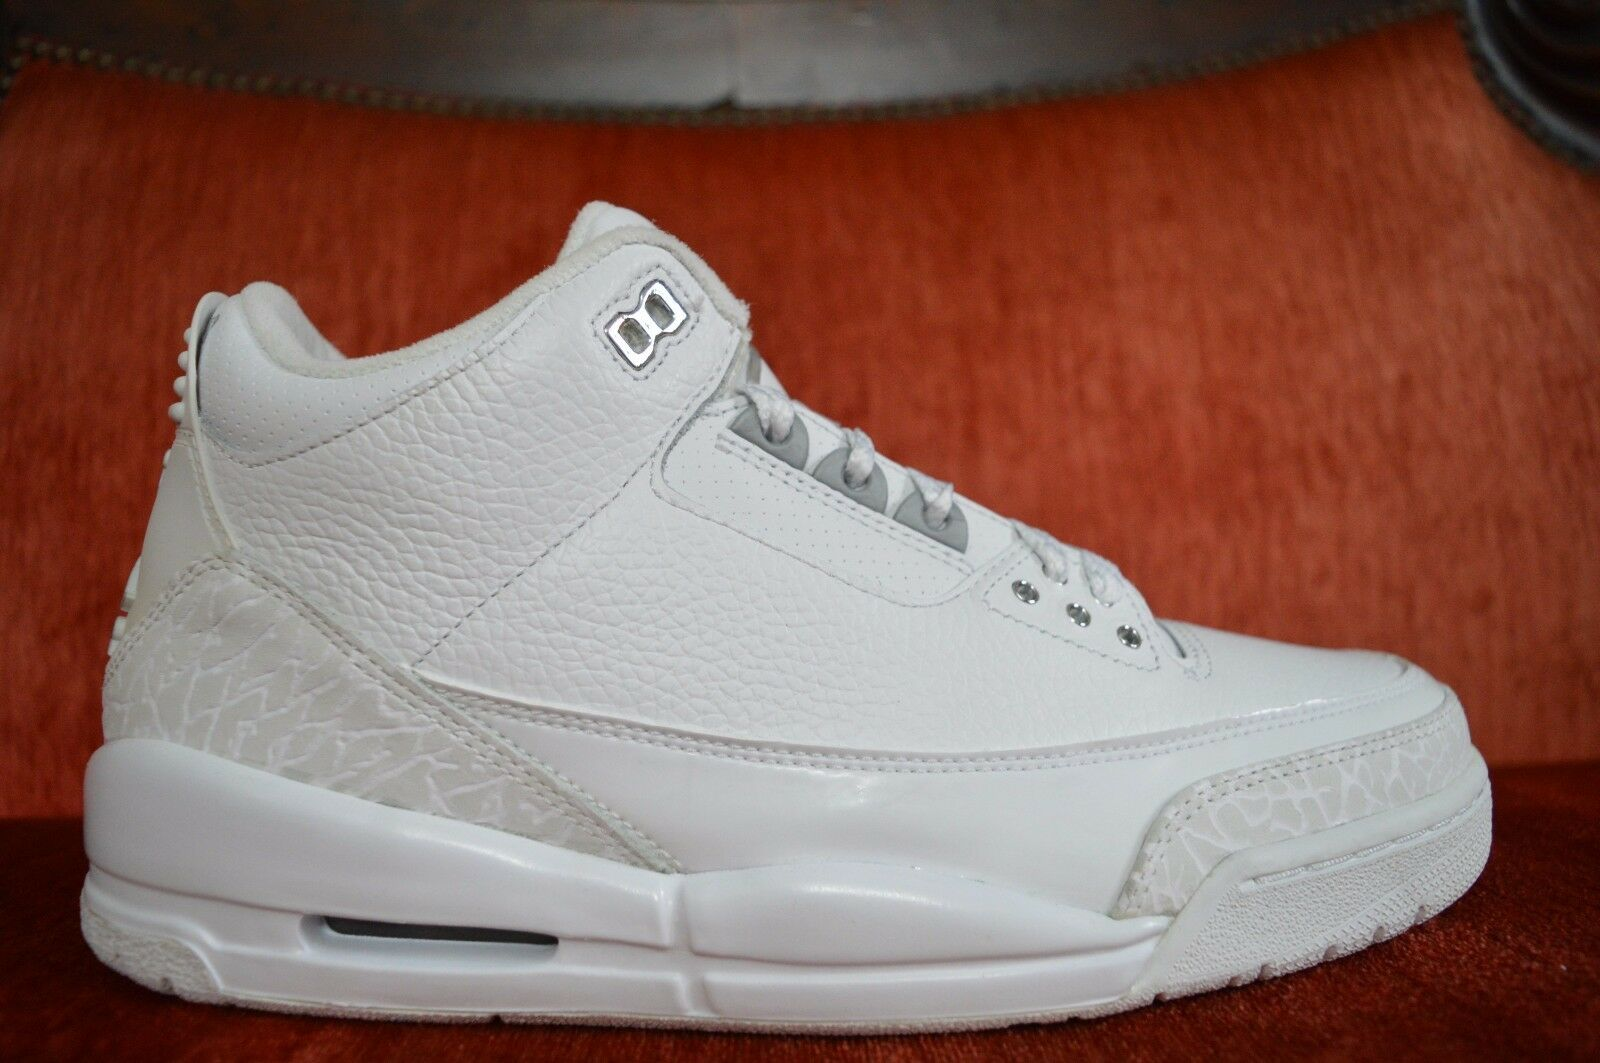 WORN ONCE Nike Air Jordan 3 Retro PURE Money White Metallic Comfortable New shoes for men and women, limited time discount